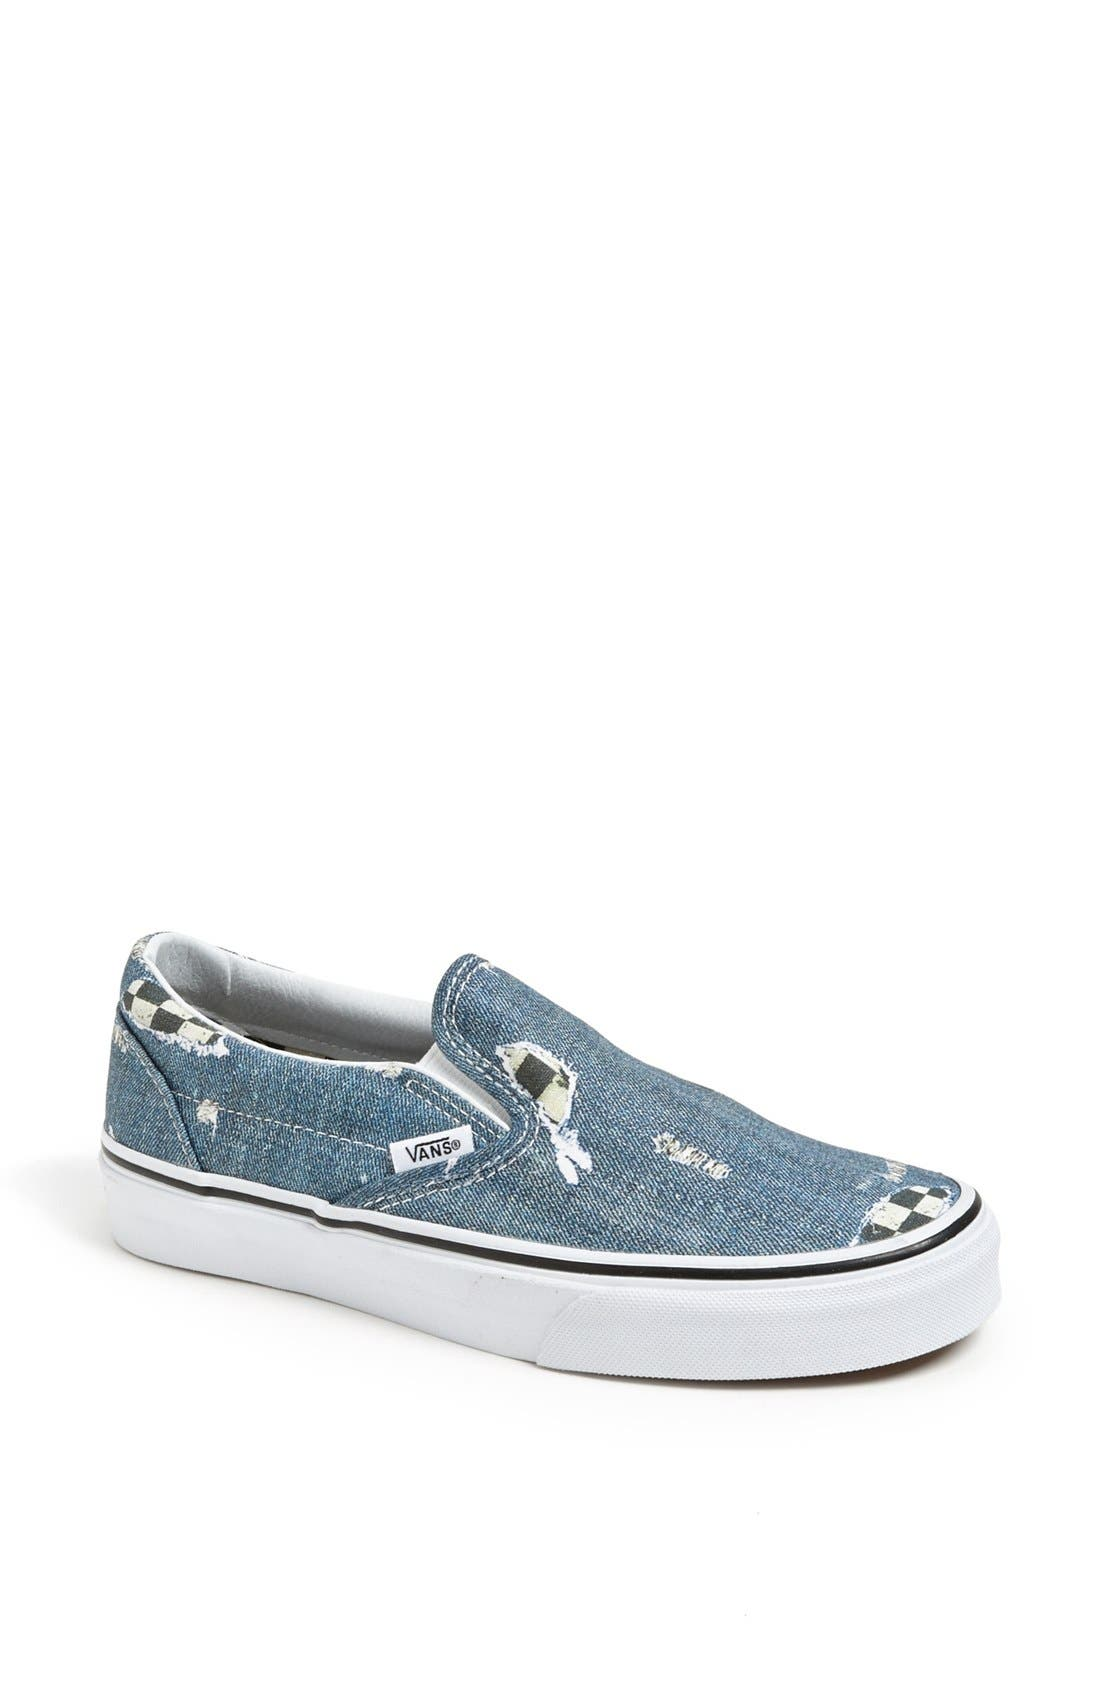 Alternate Image 1 Selected - Vans 'Classic - Denim' Sneaker (Women)